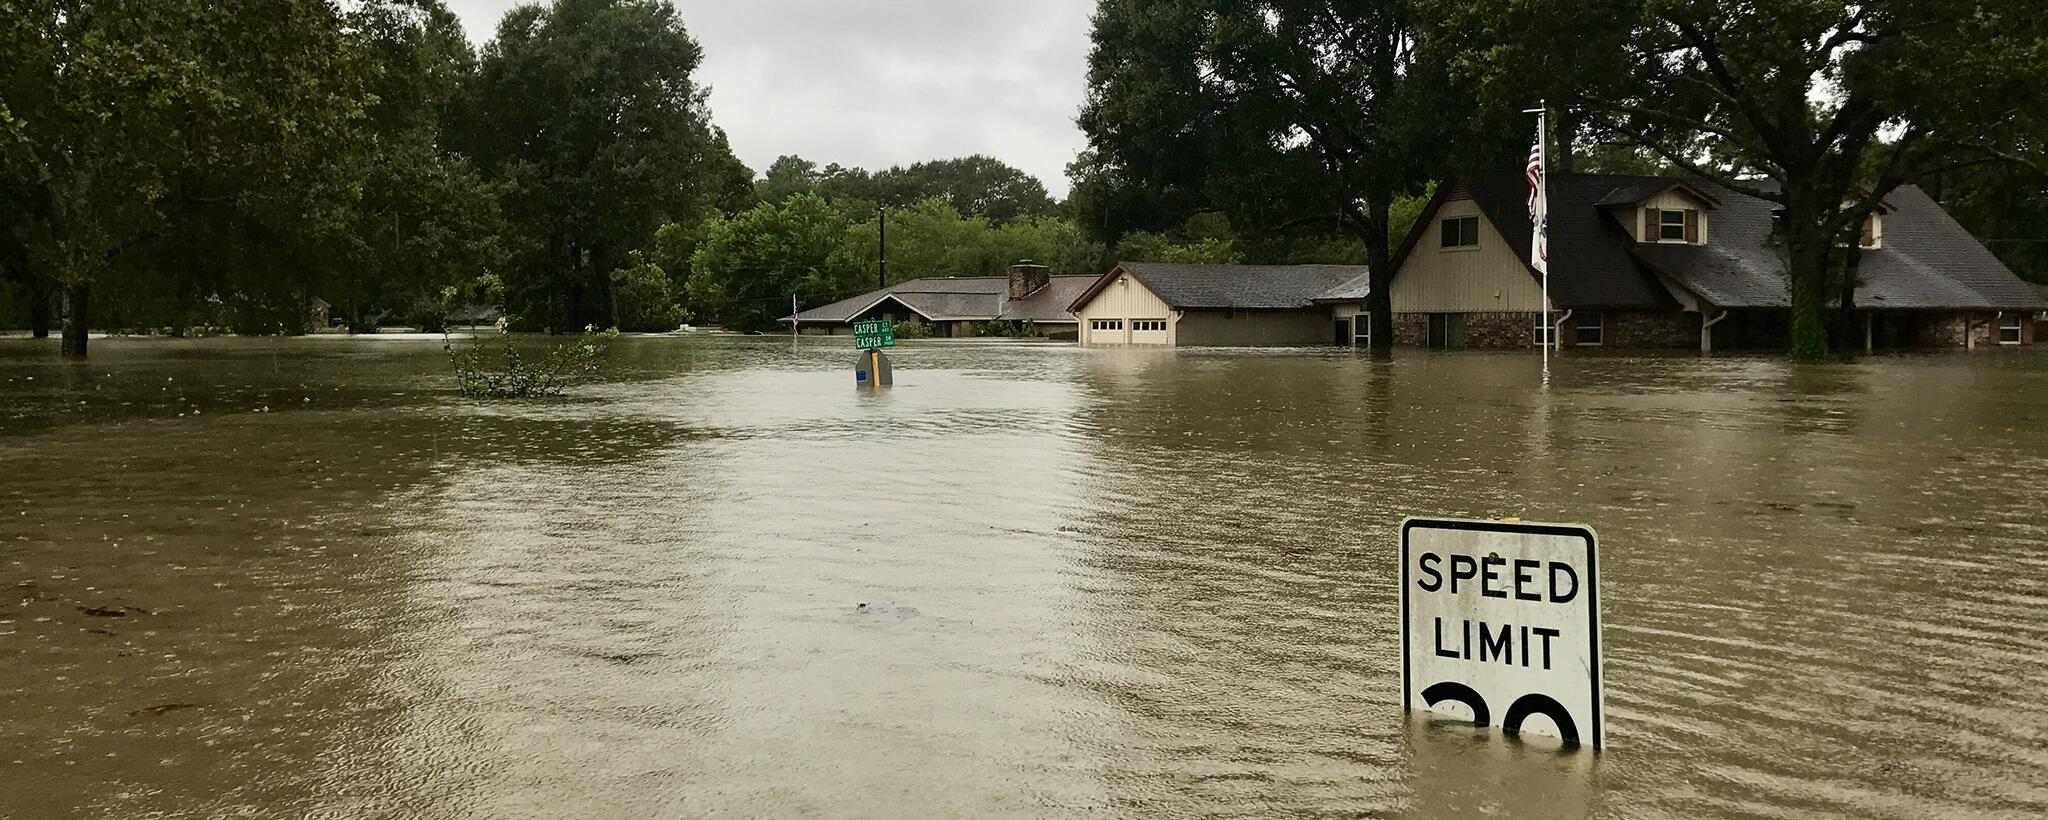 Flooded neighborhood. Flood waters cover a speed limit sign, houses in the background.